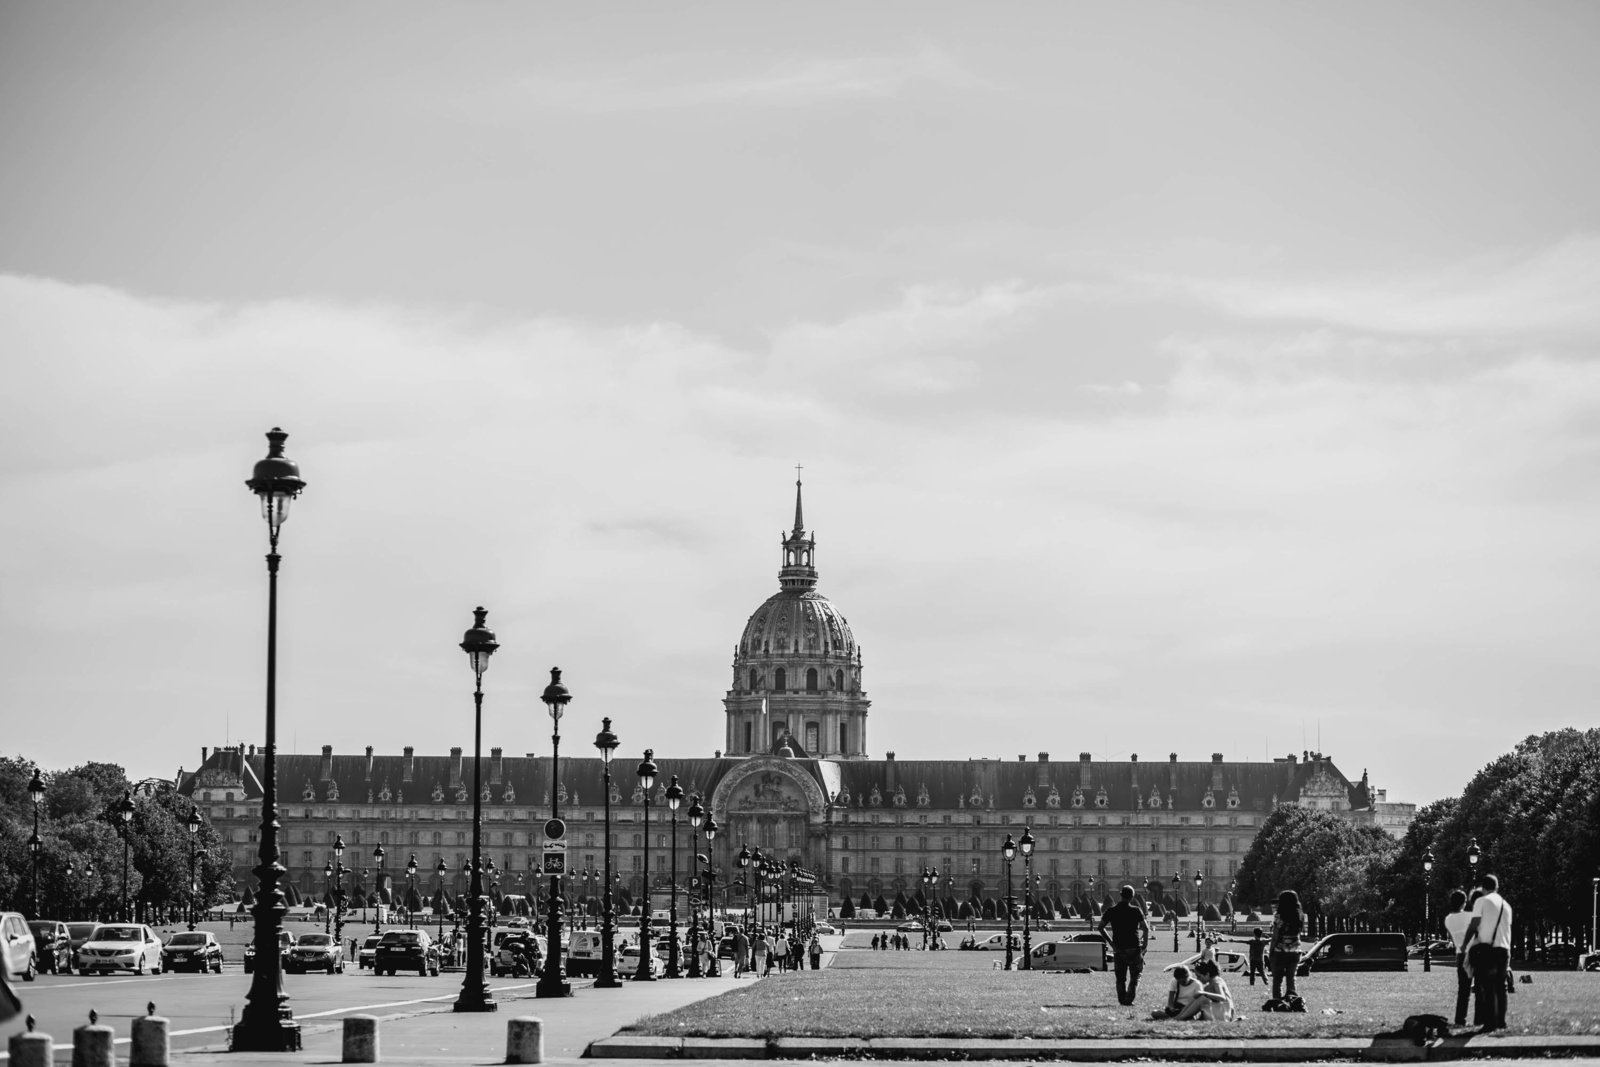 musee-armee-paris-france-travel-destination-wedding-kate-timbers-photography-1777